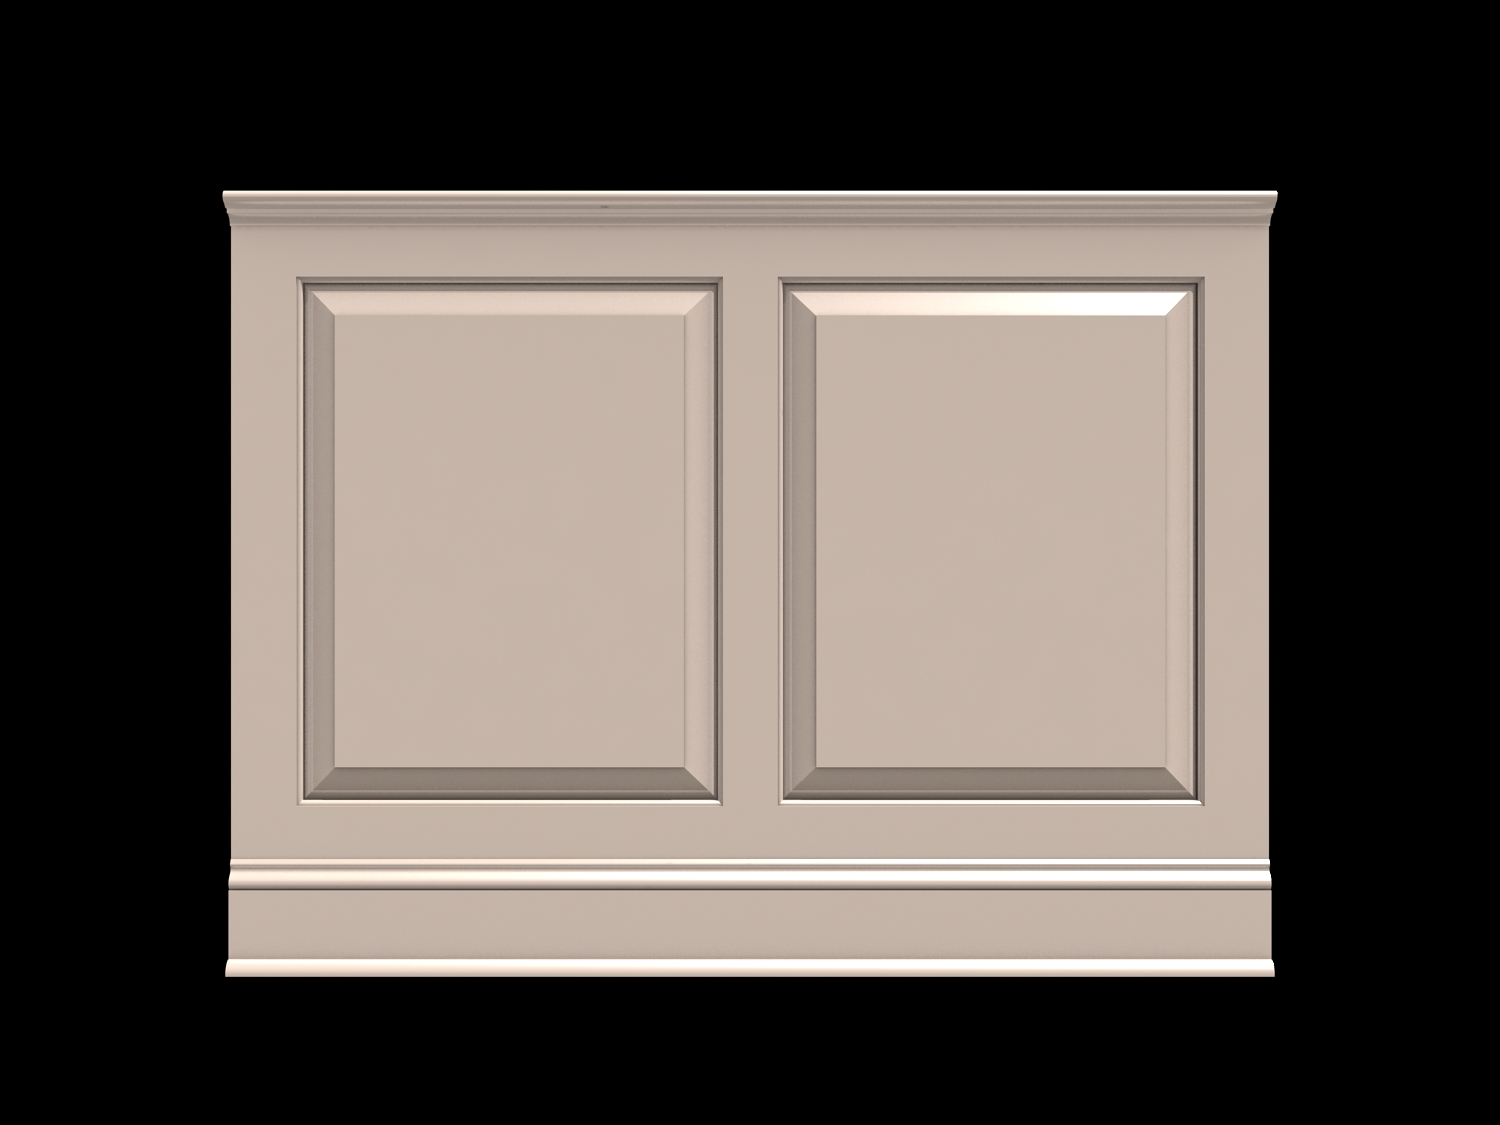 Wainscot solutions inc custom assembled wainscoting - Wainscot Solutions Option 1 Fairfield Raised Panel Shown In 36